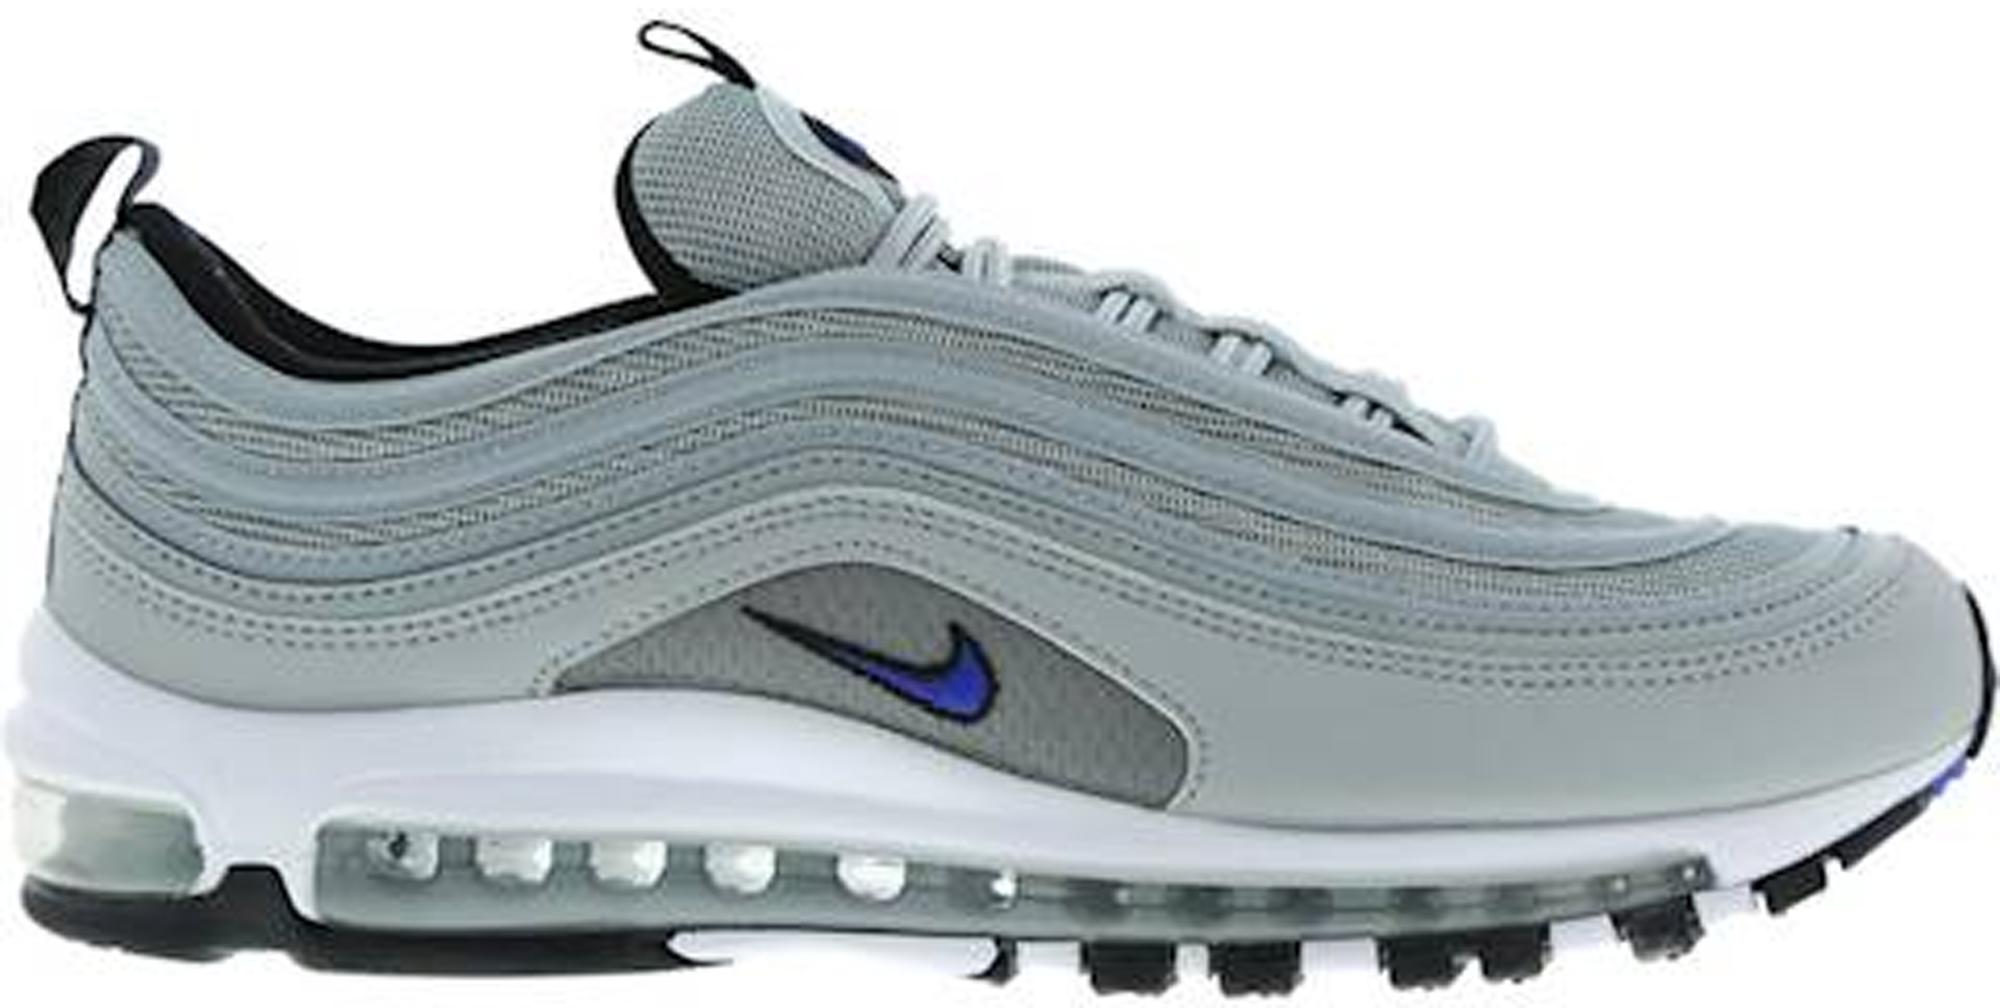 new product 8cb67 0e21e Men's Air Max 97 Metallic Silver Racer Blue